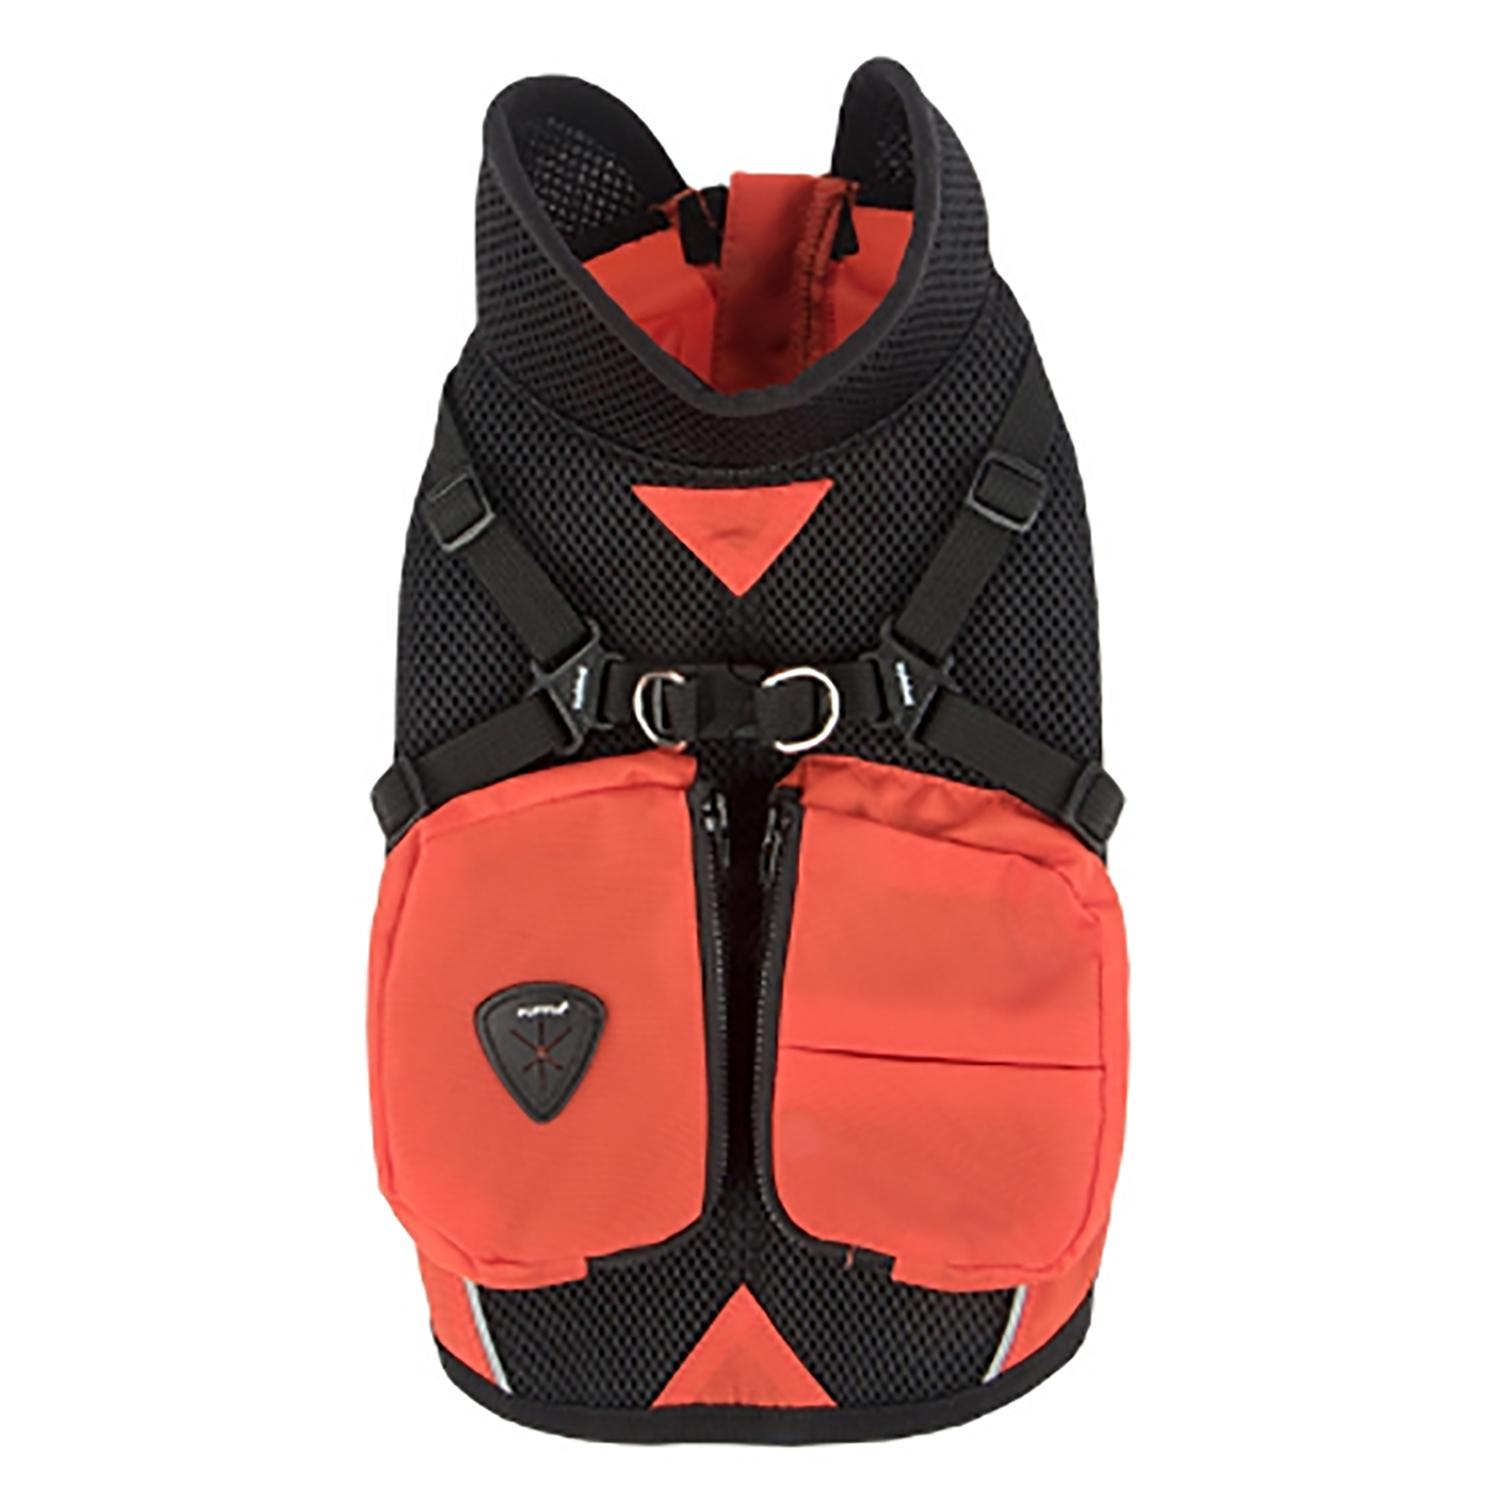 P2 Dog Vest by Puppia Life - Black